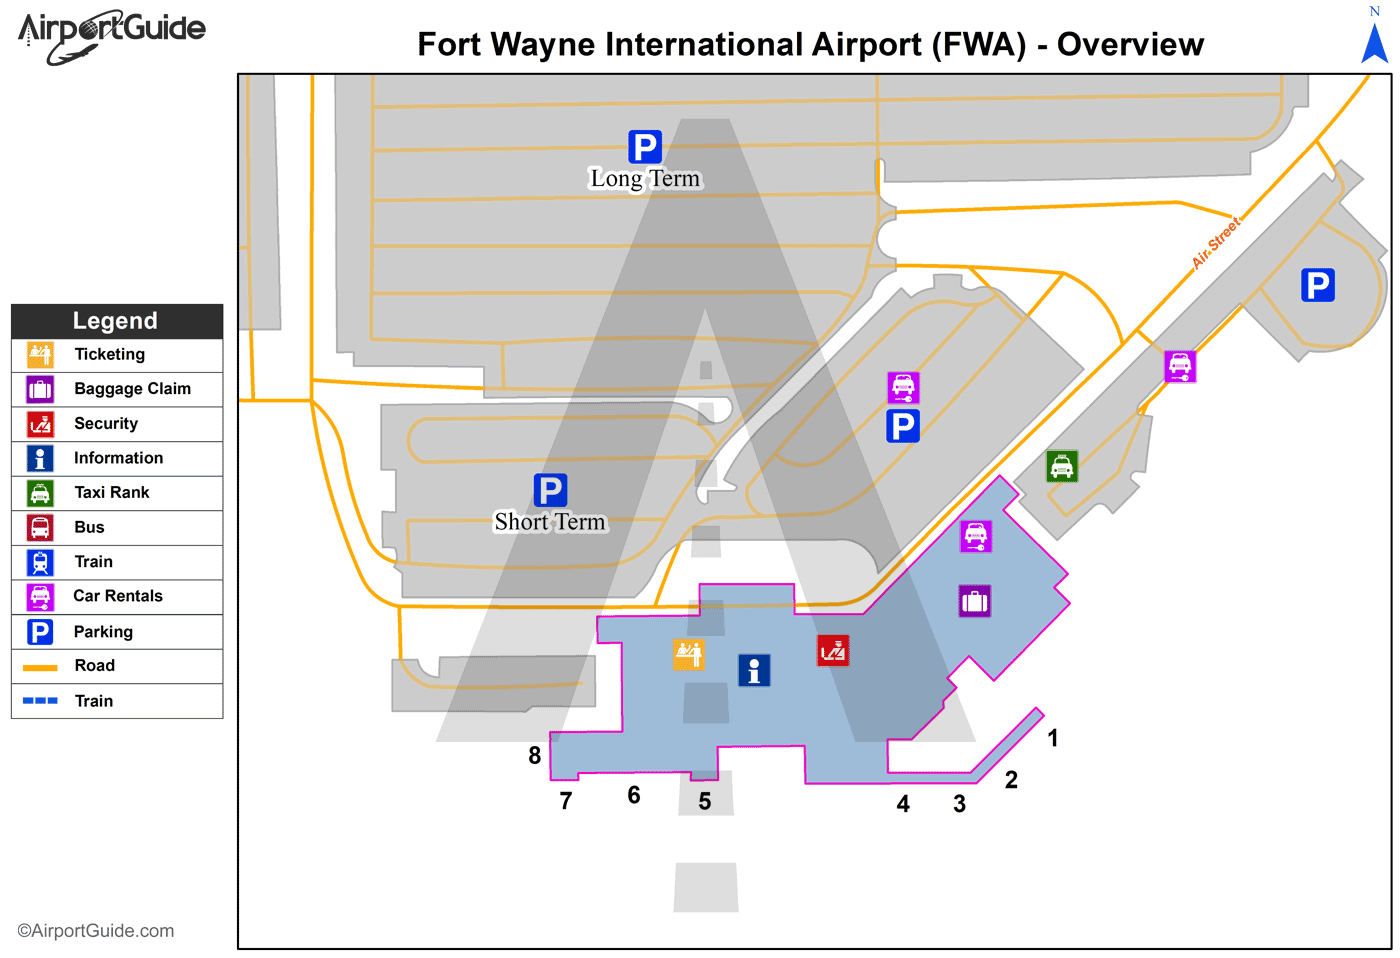 Fort Wayne - Fort Wayne International (FWA) Airport Terminal Map - Overview